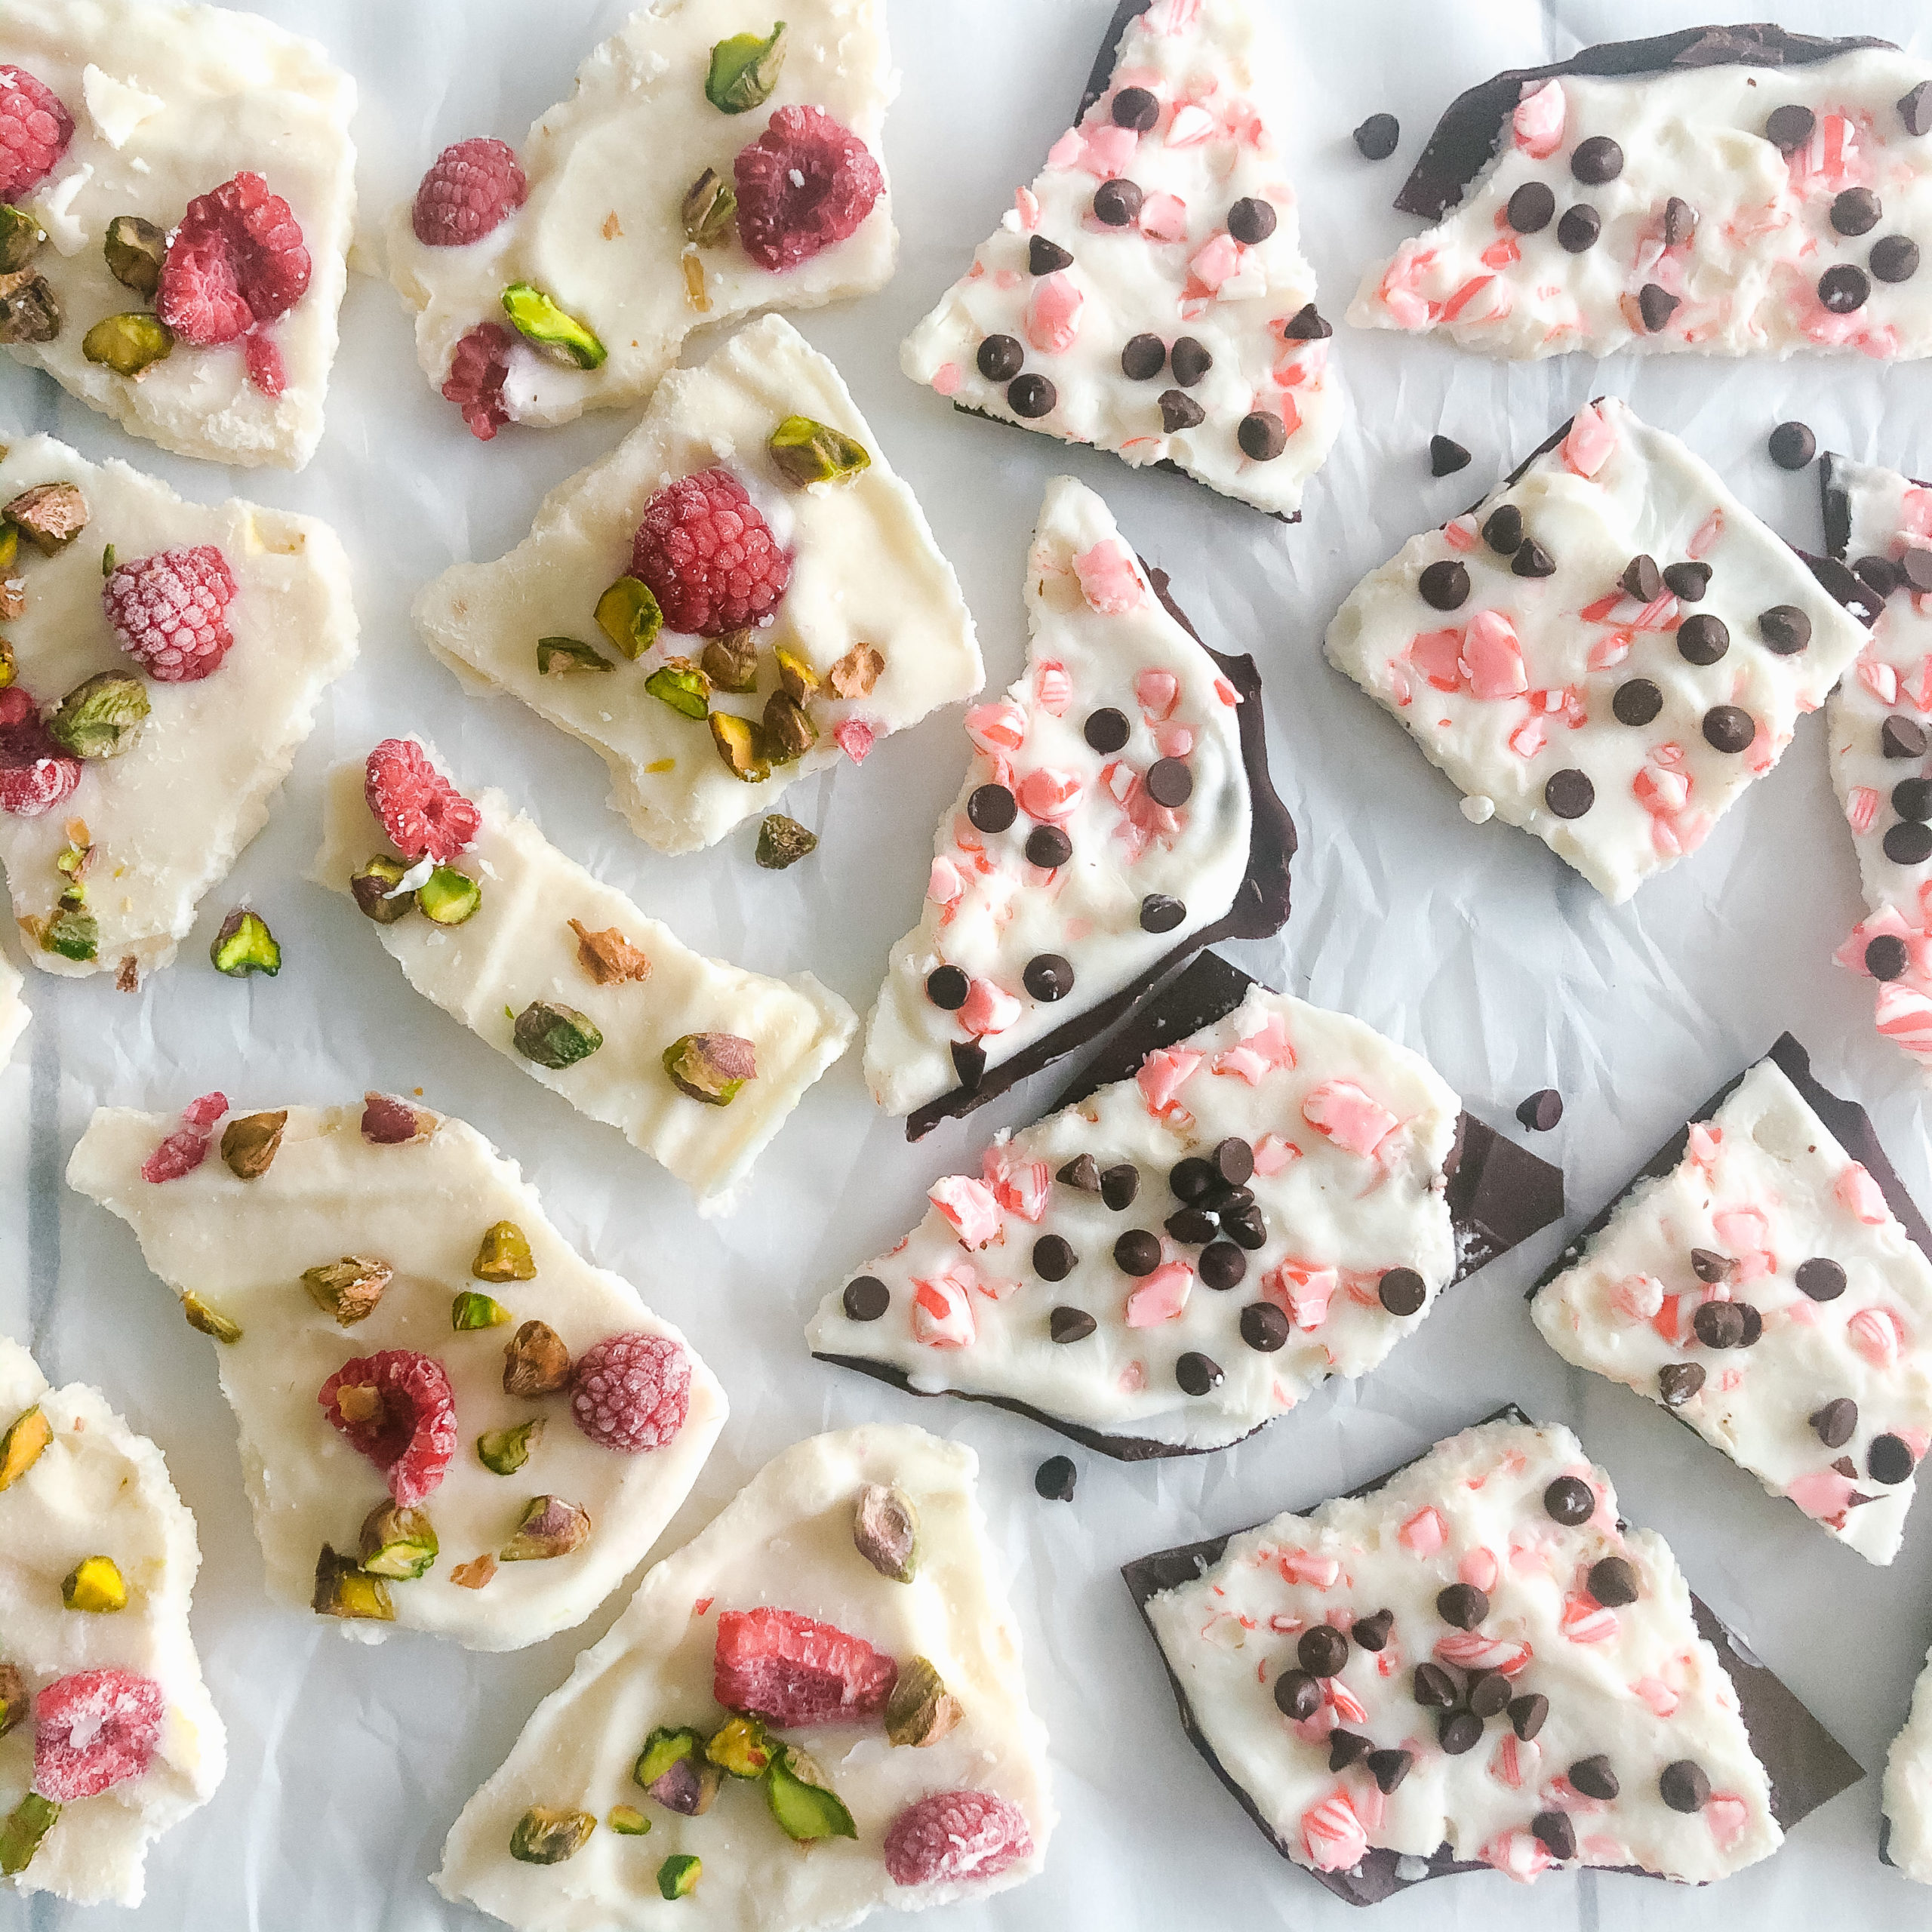 Healthy Holiday Frozen Greek Yogurt Bark 2 Ways